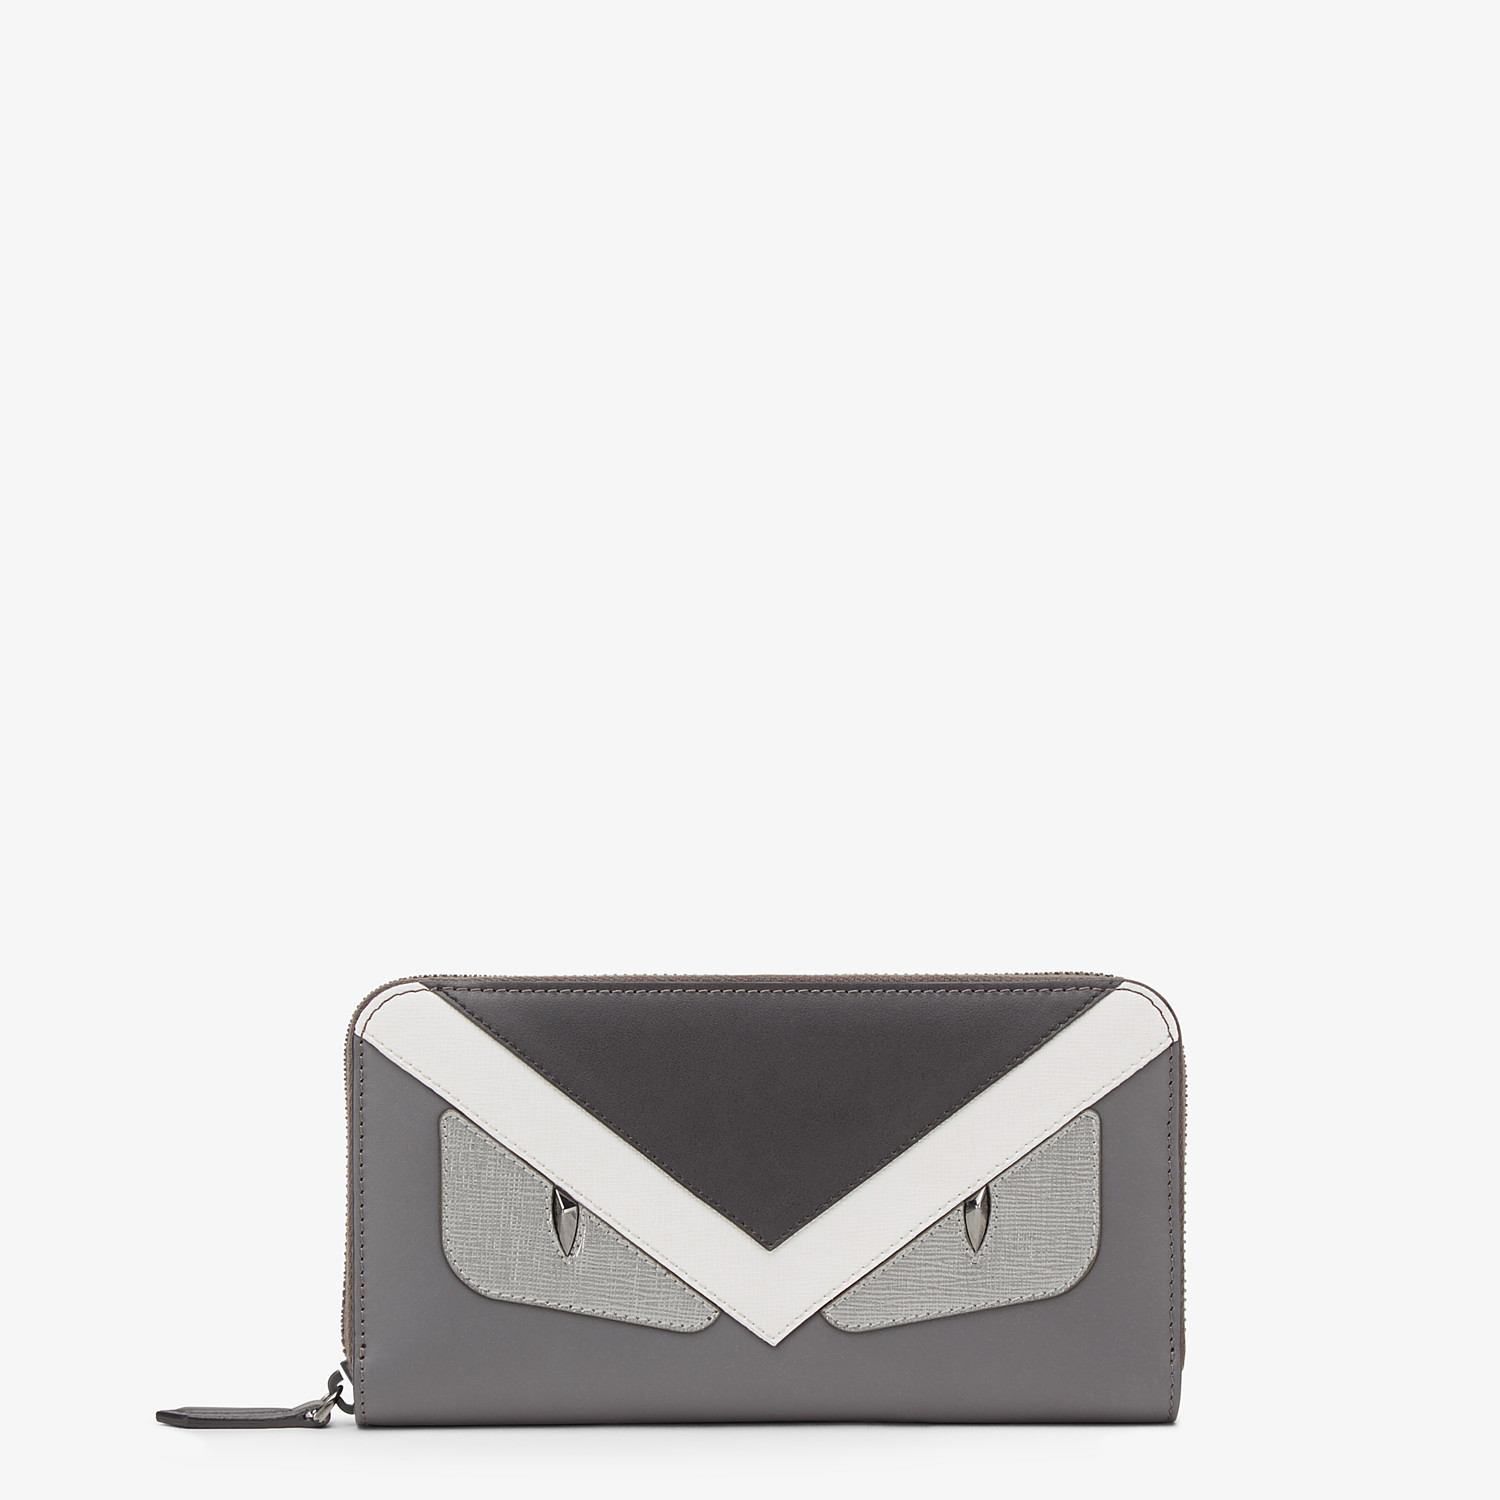 FENDI ZIP AROUND - Zip-around wallet in grey leather with insert - view 1 detail